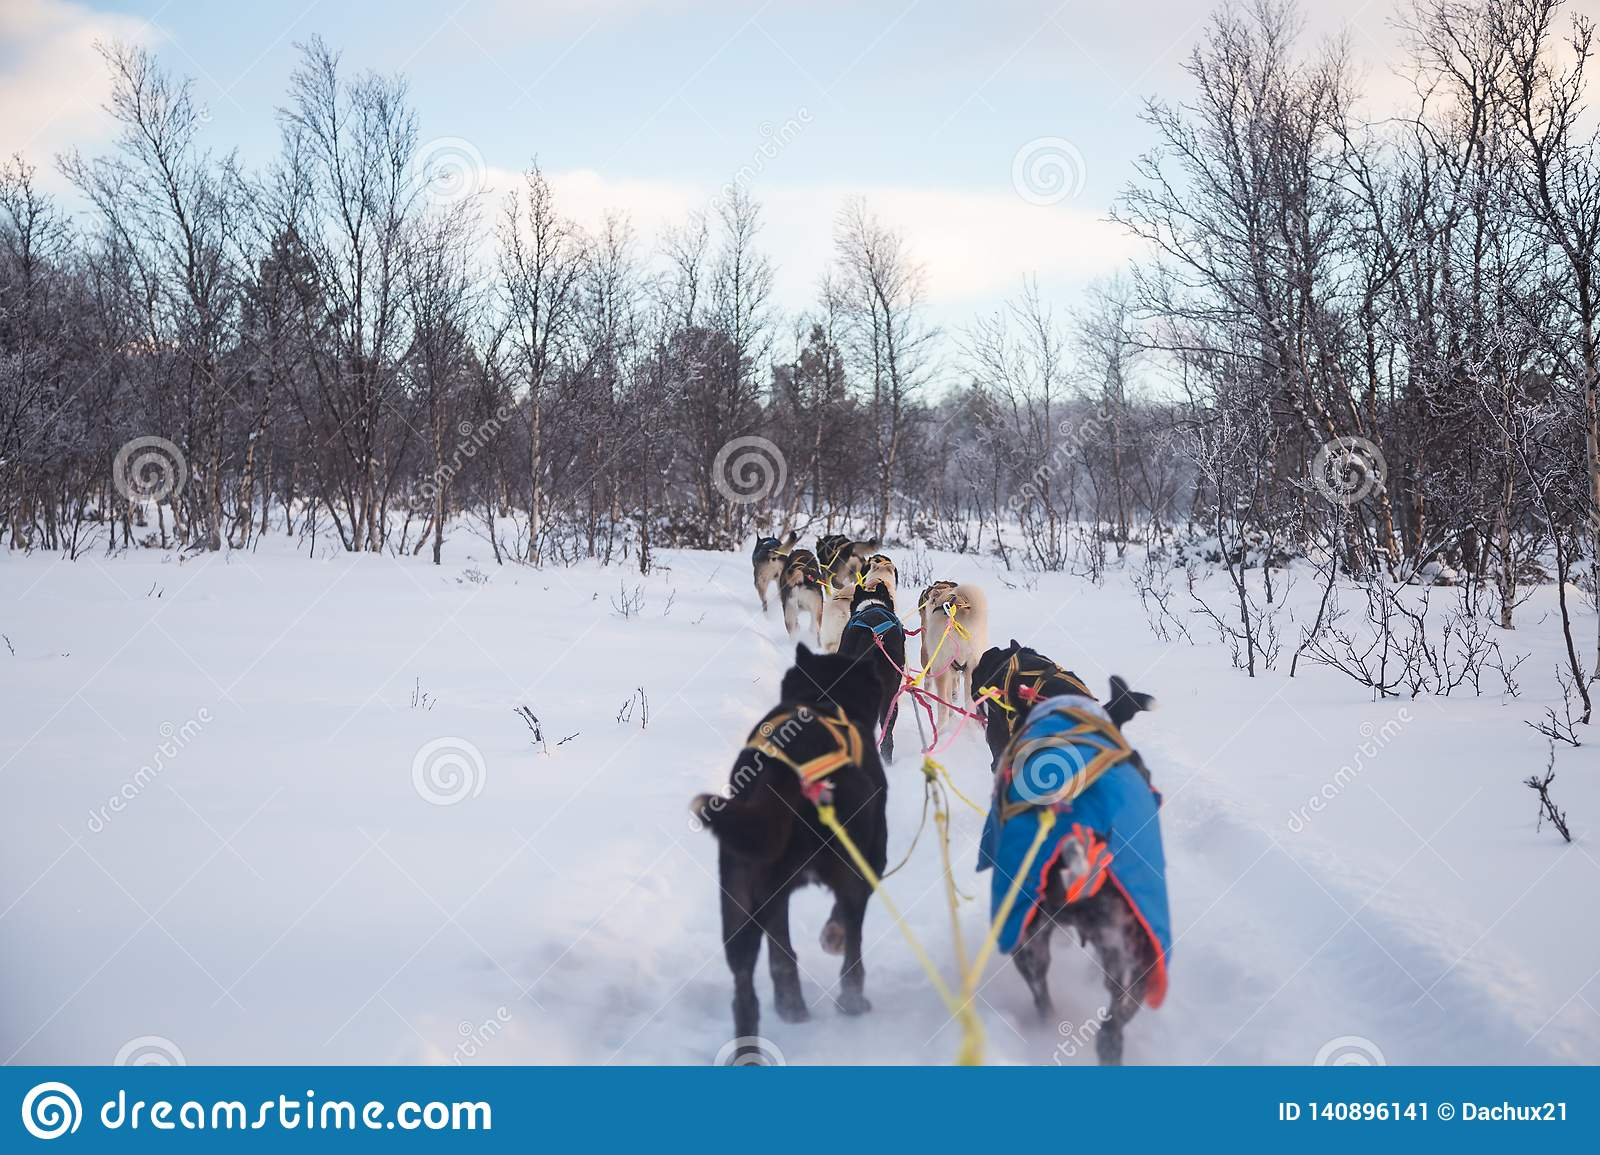 An exciting experience riding a dog sled in the winter landscape. Snowy forest and mountains with a dog team.